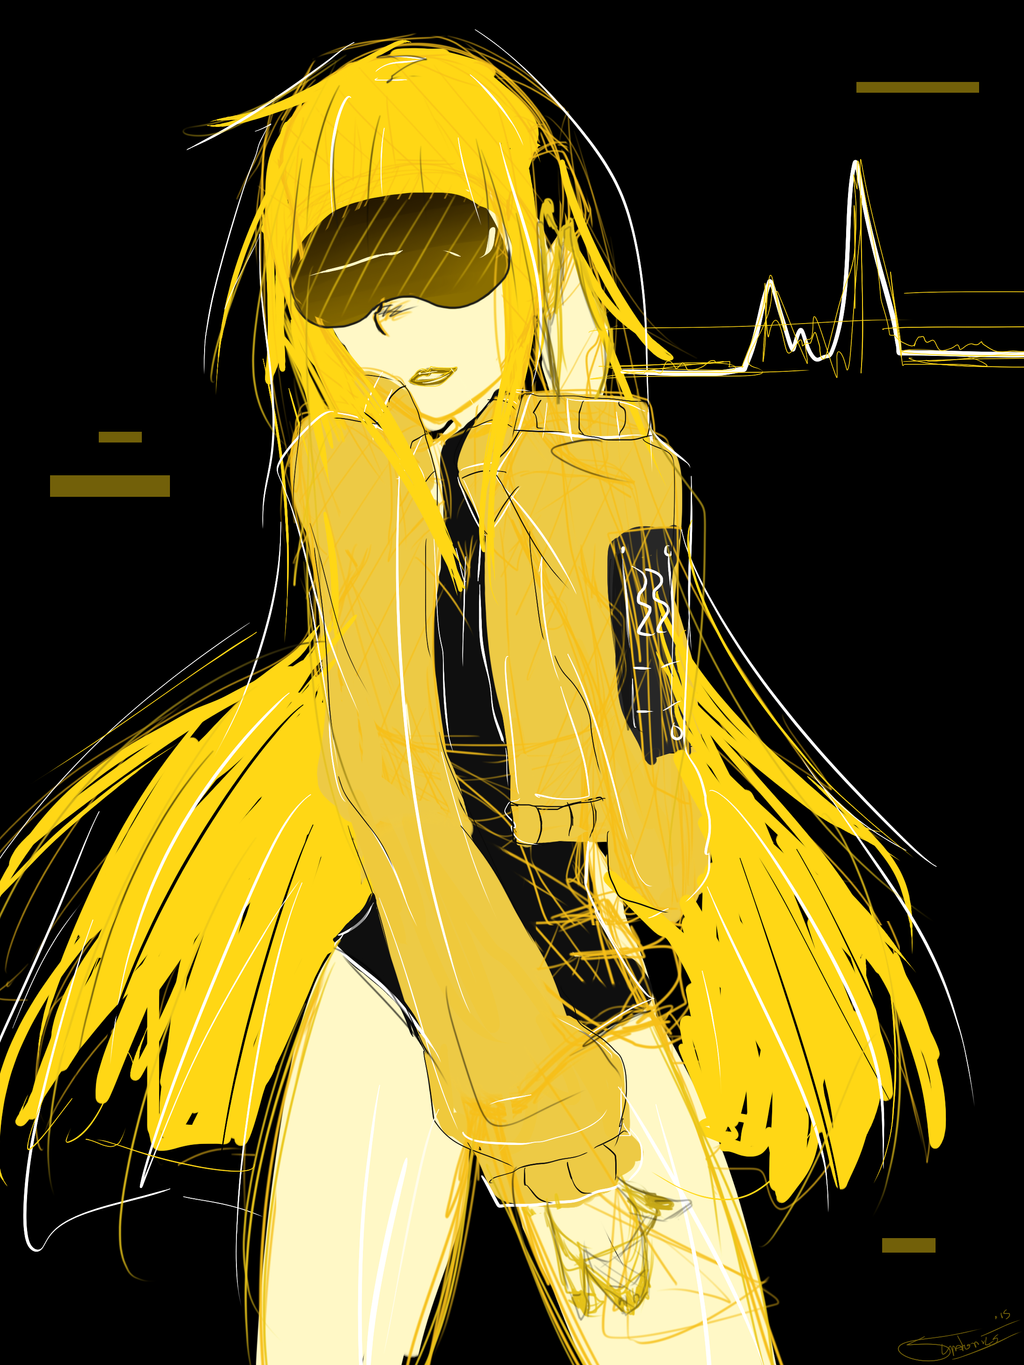 Cyber diva by syntonic s on deviantart - Cyber diva vocaloid ...